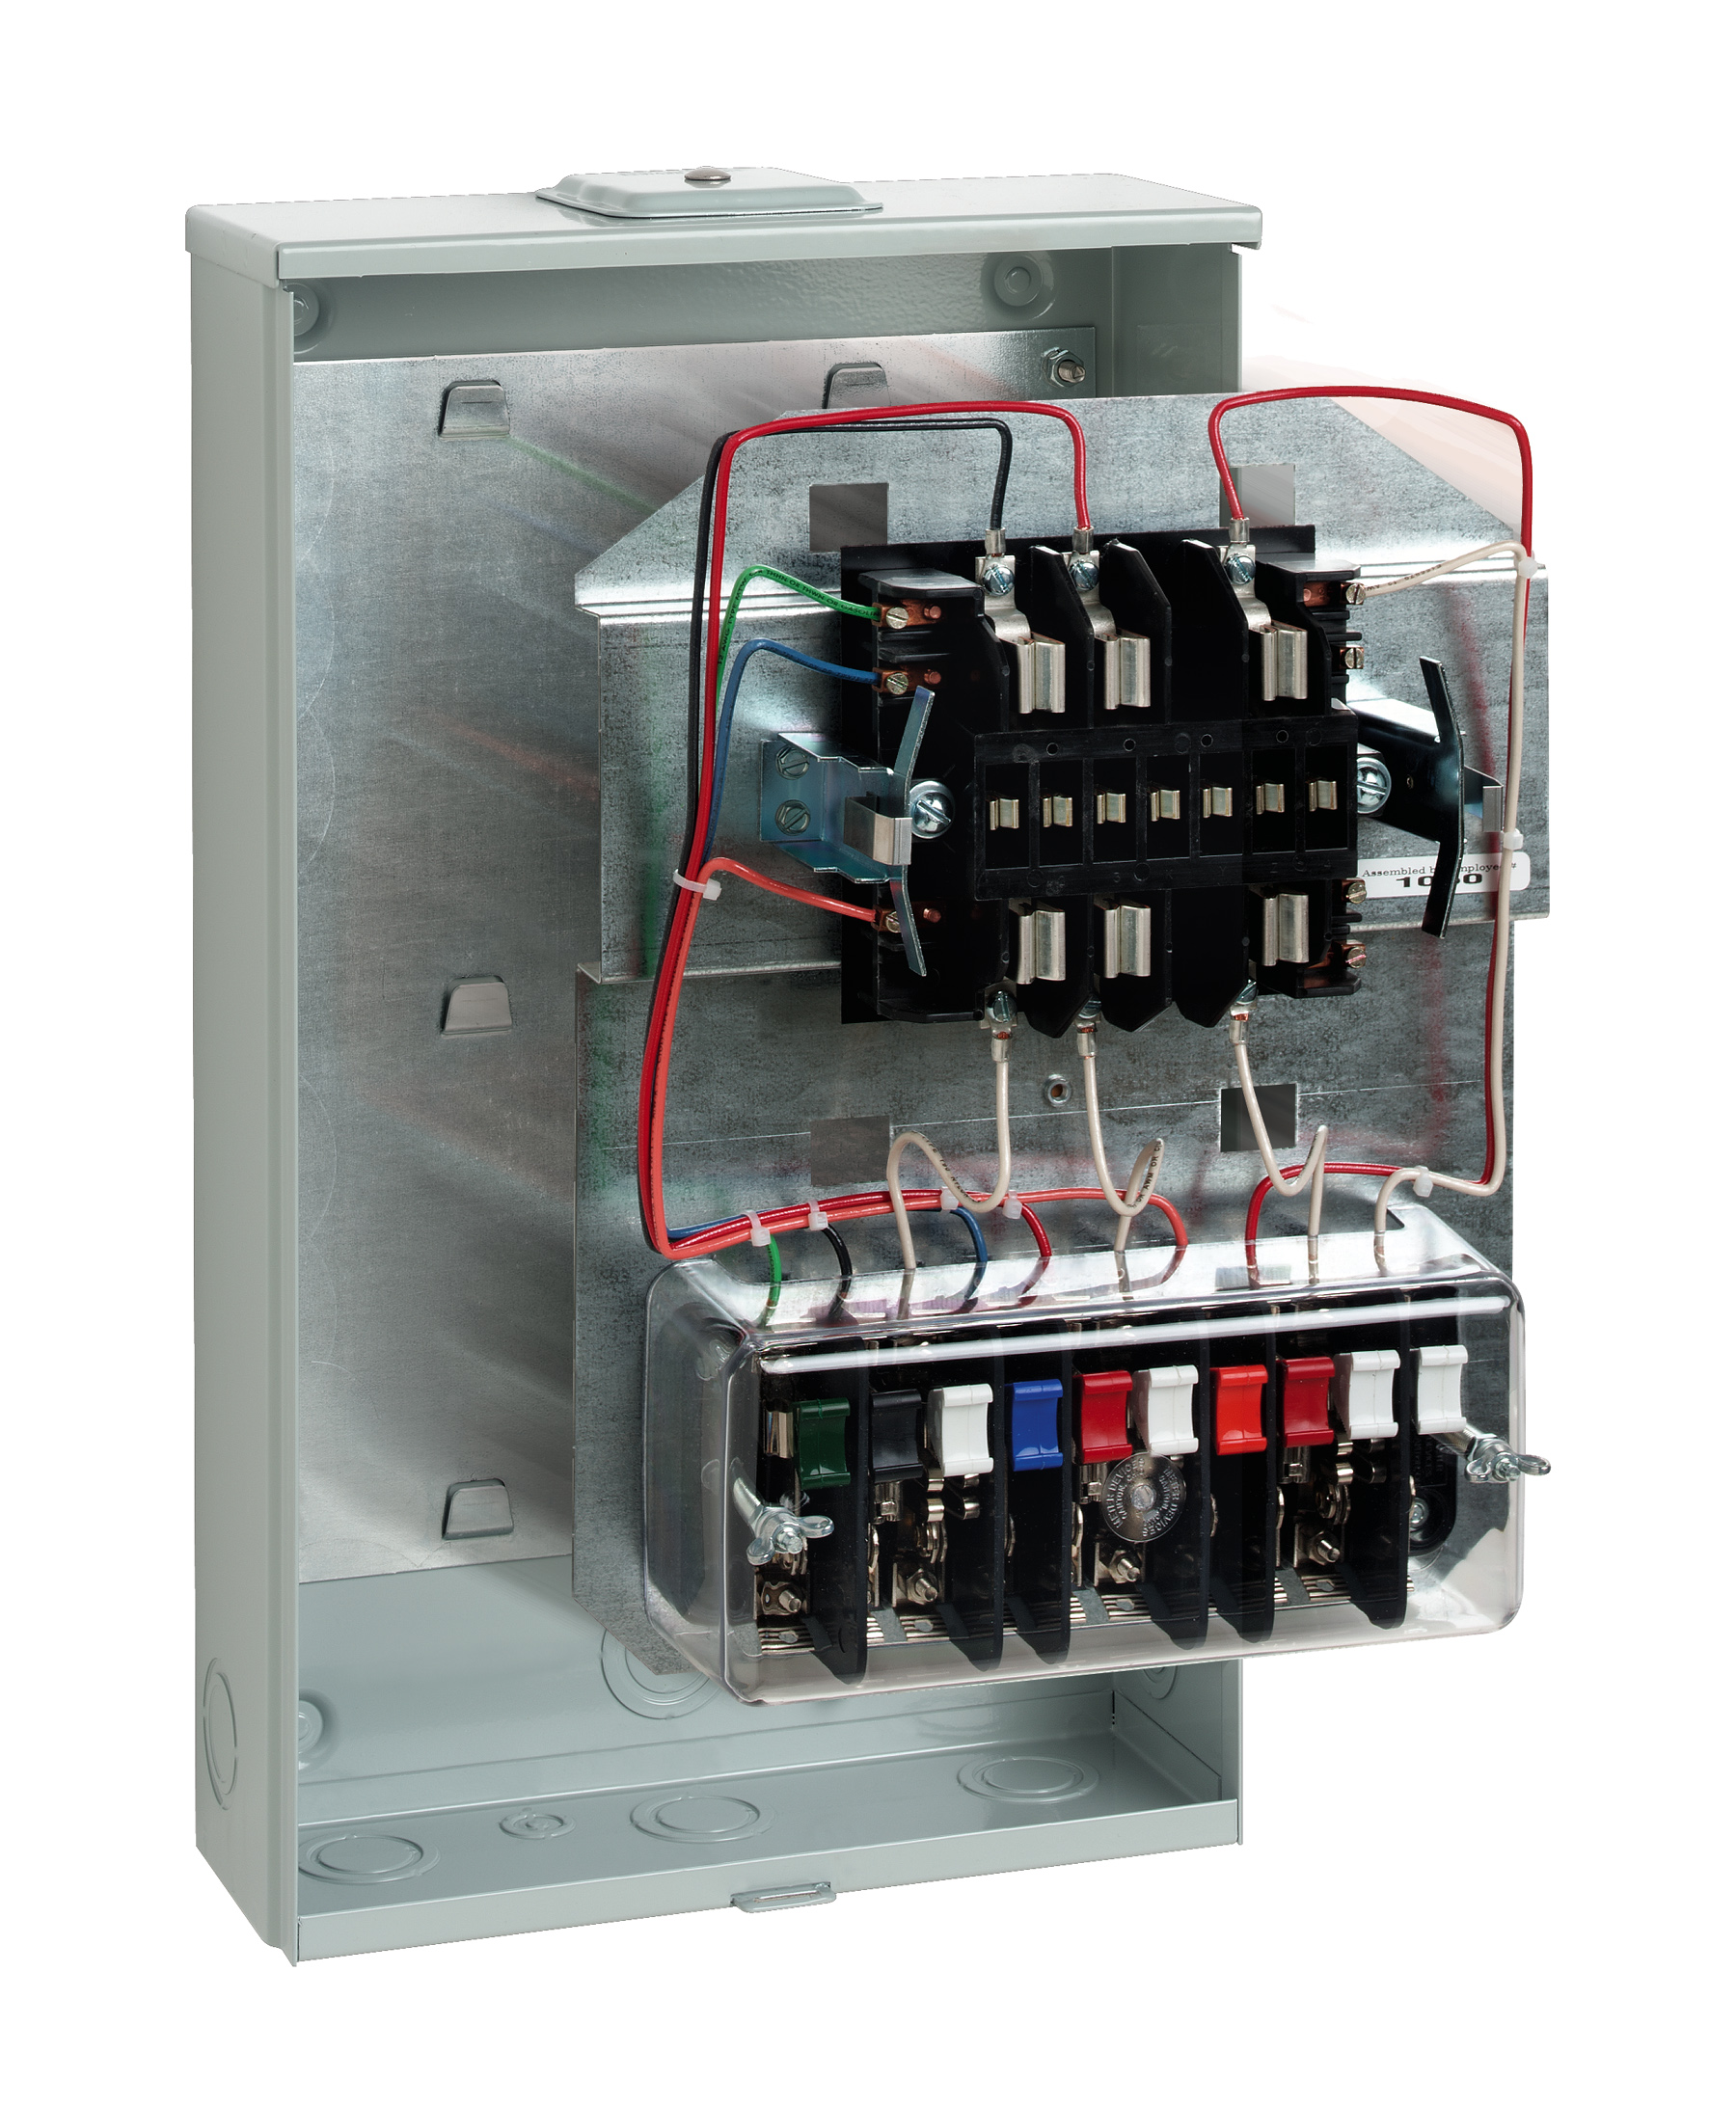 hight resolution of brooks upg snap 2 tm meter panelbrooks upg s snap2 transformer rated meter panel reduces installation time from hours to a matter of minutes